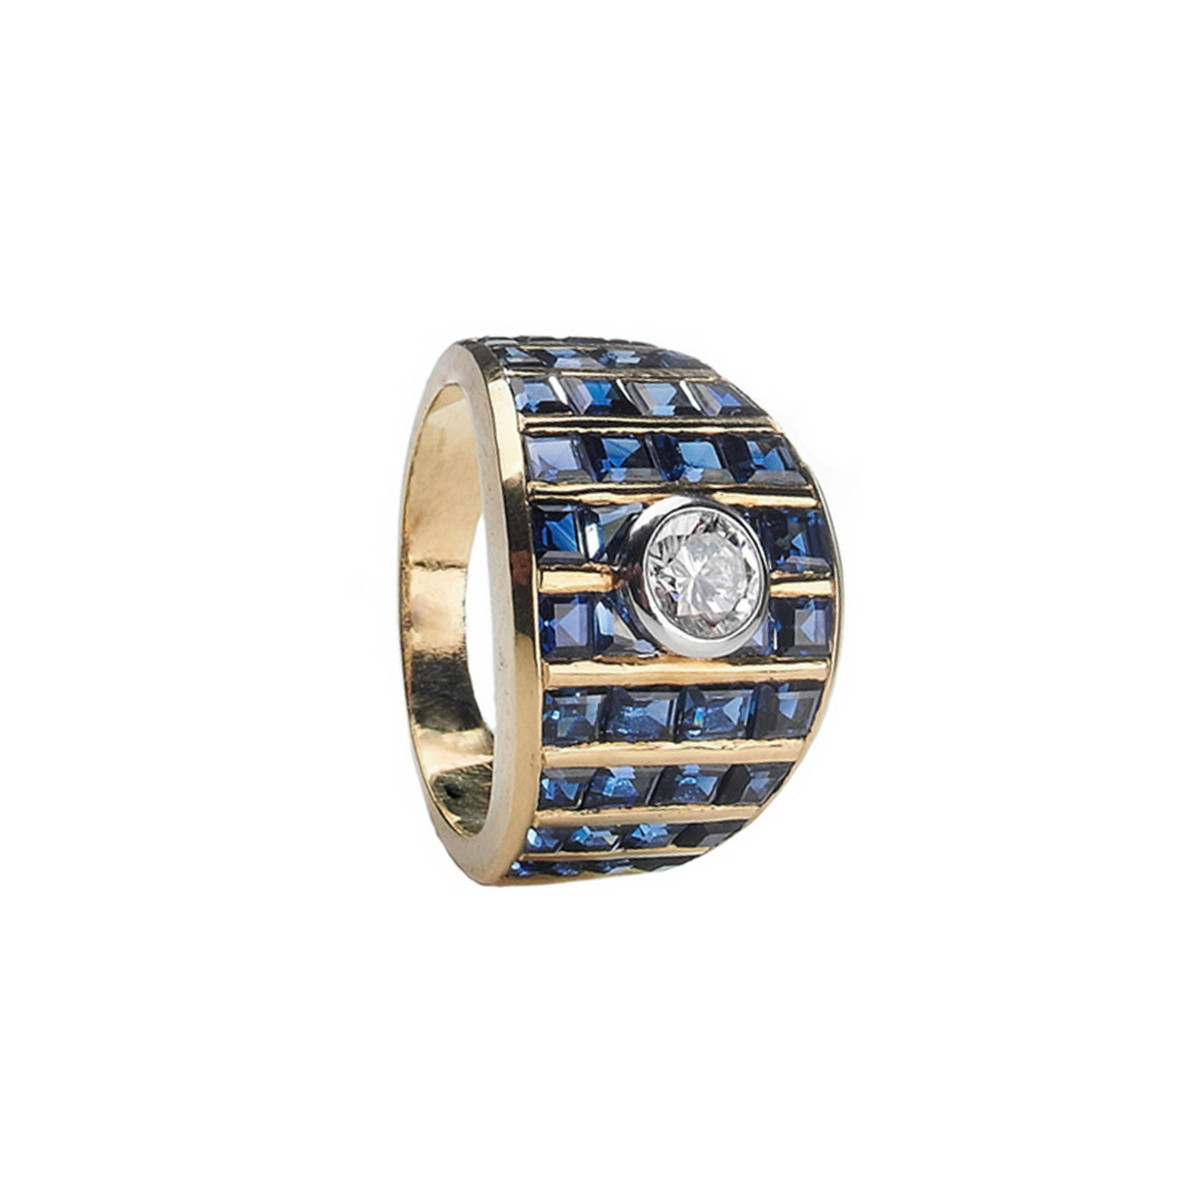 GOLD DIAMOND RING AND SQUARE SAPPHIRES